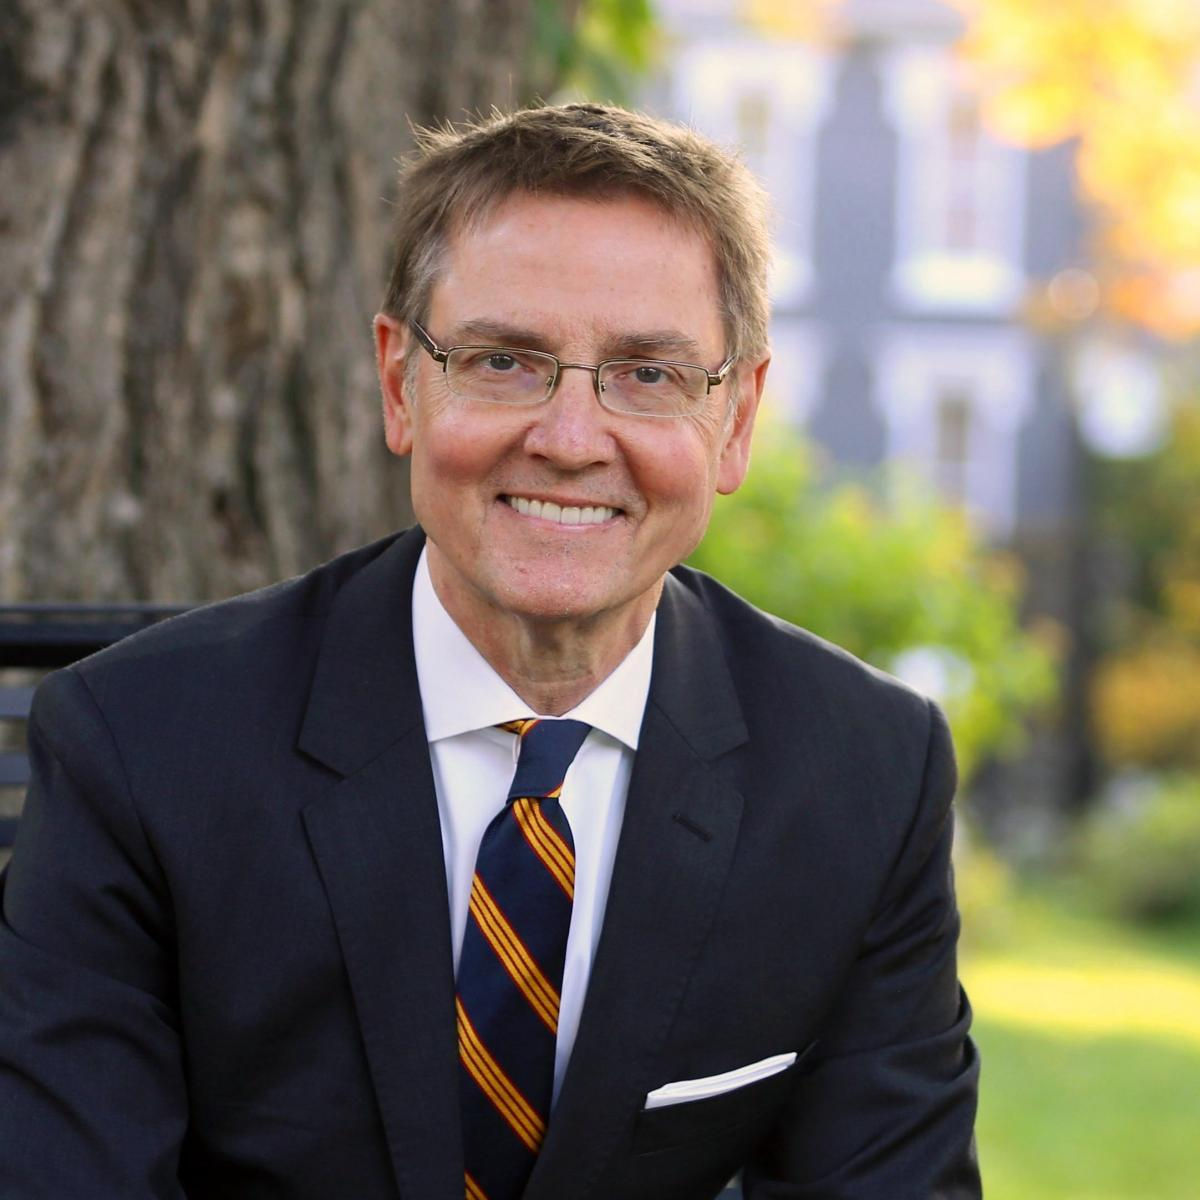 Lexington Mayor Jim Gray Enters Race for Sixth District Congressional Seat